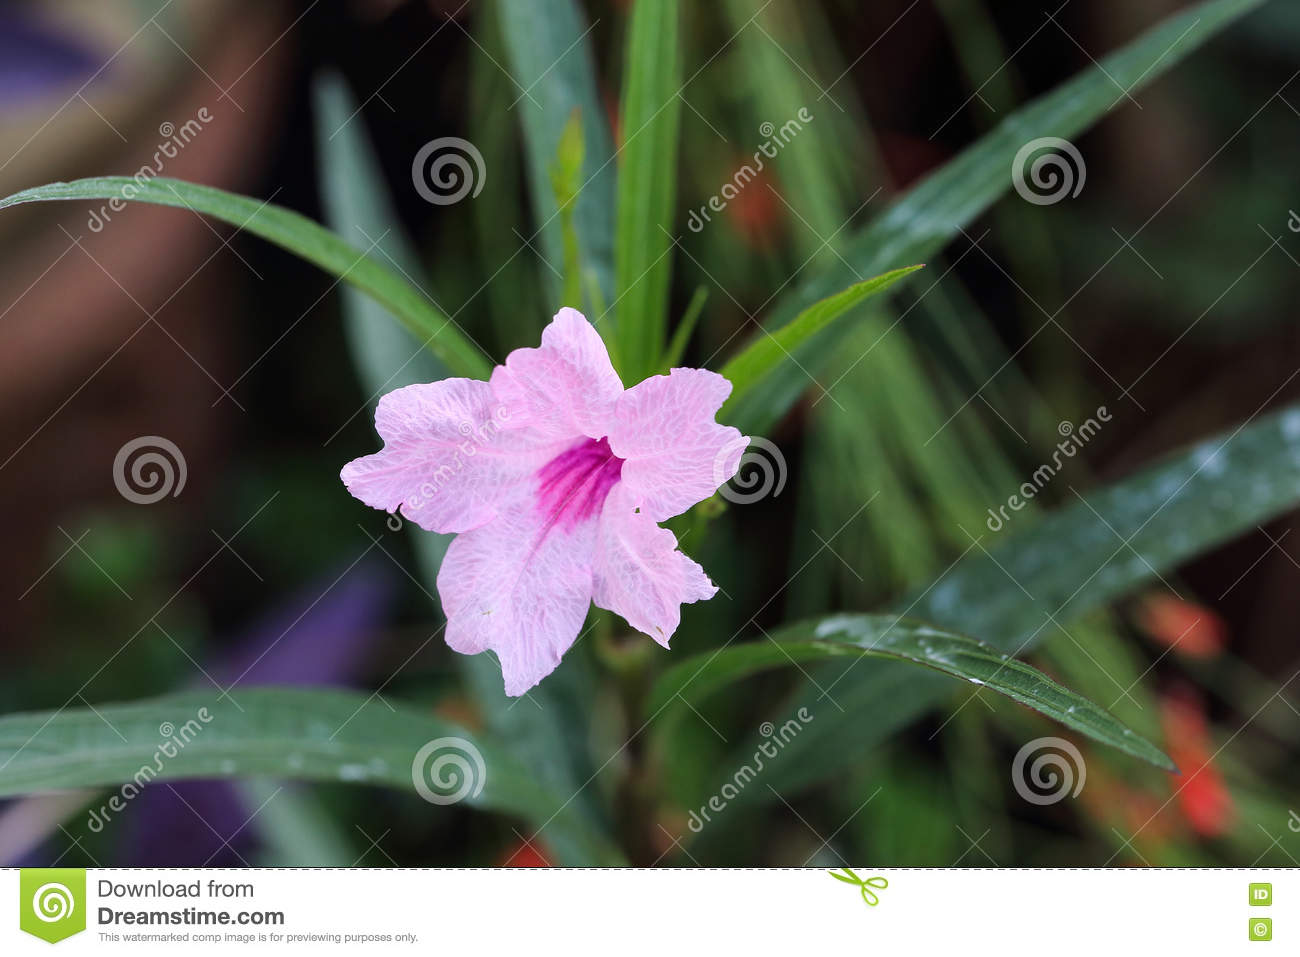 Pink Bell Shaped Flower Stock Image Image Of Leaf Green 72759293